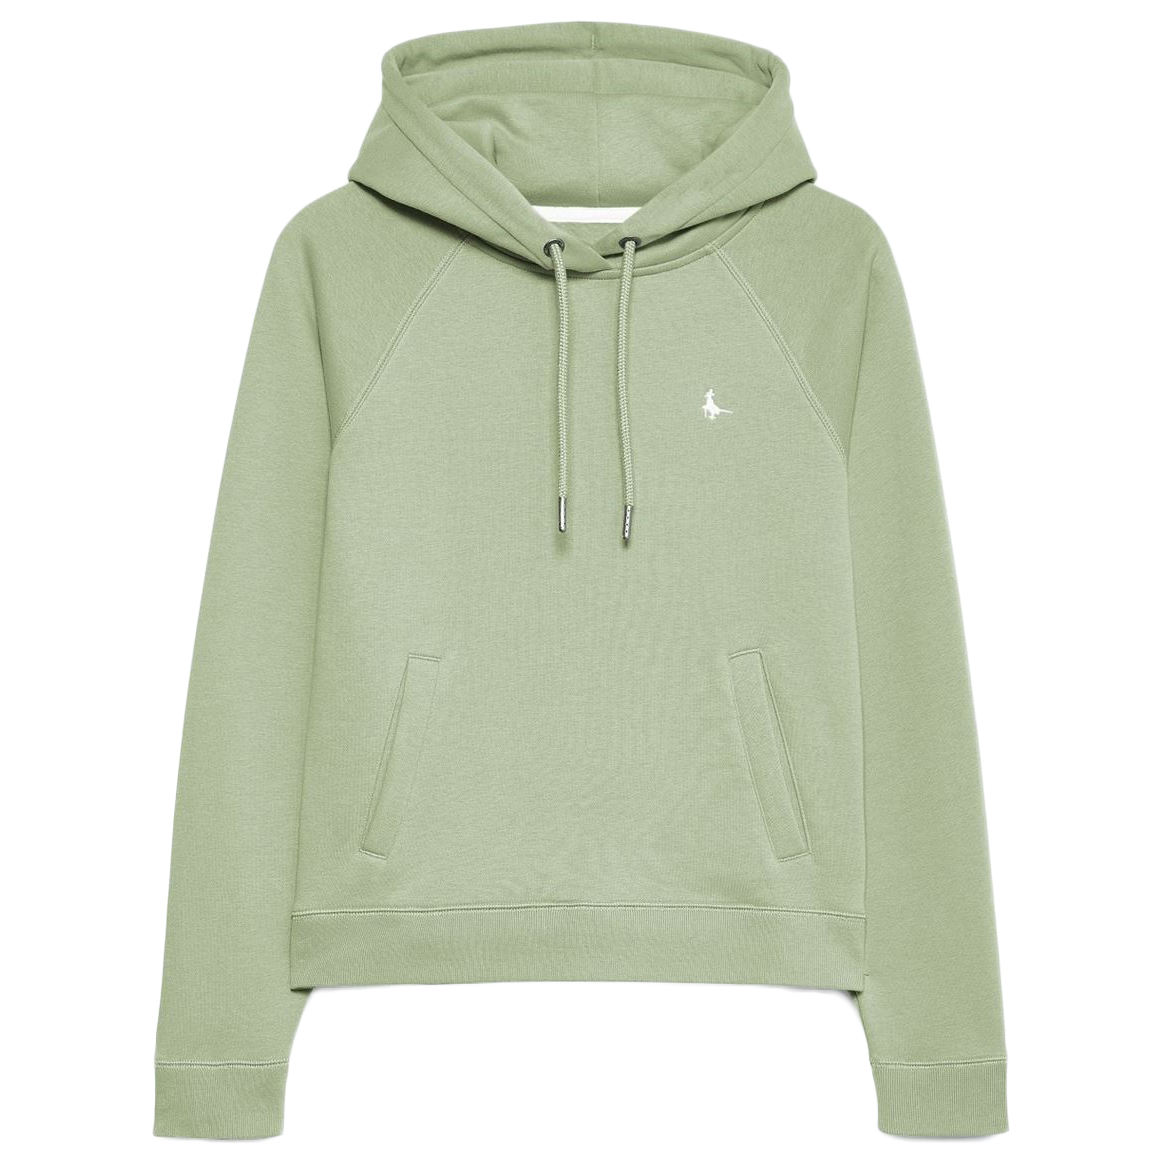 Jack Wills Women's Collingdon Raglan Hoodie - Green, 4